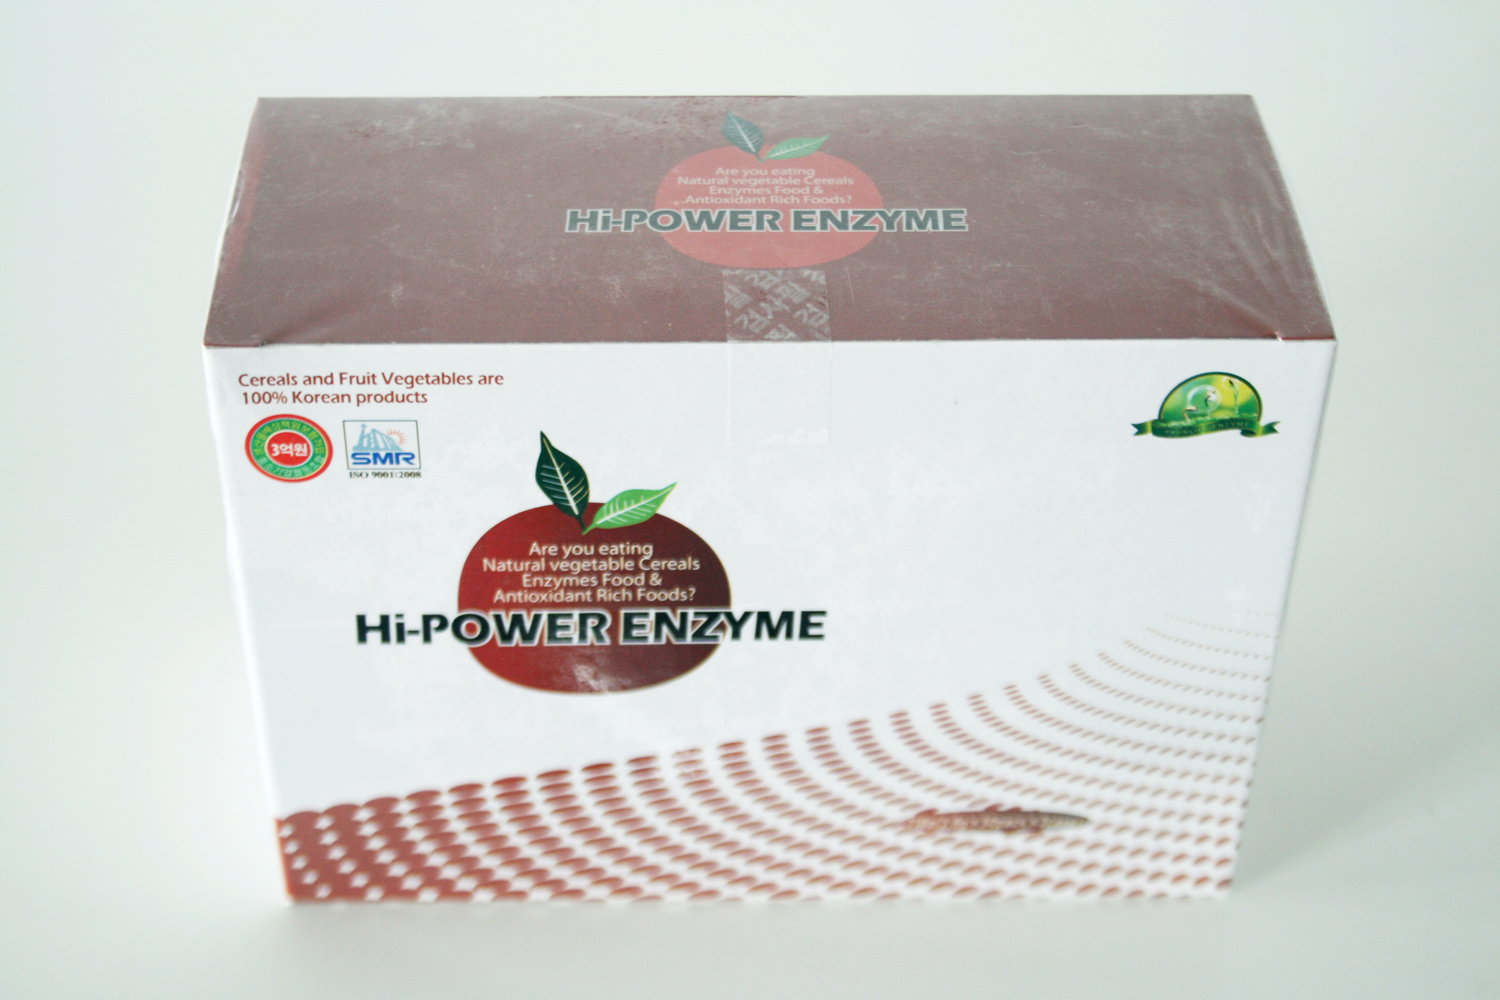 HI-POWER ENZYME